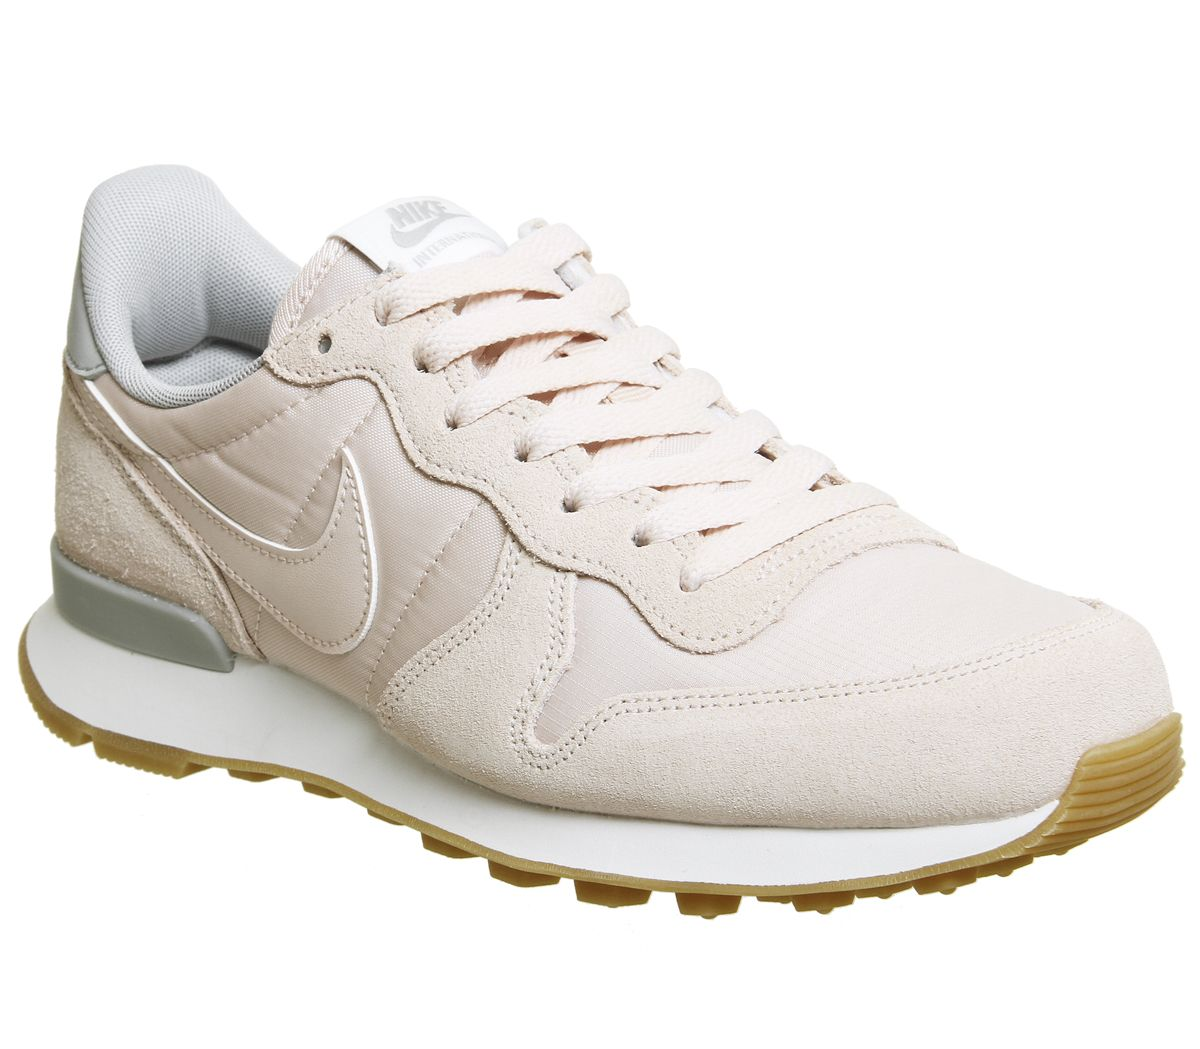 buy popular 0f346 8067c Nike Nike Internationalist Trainers Barely Rose - Hers trainers